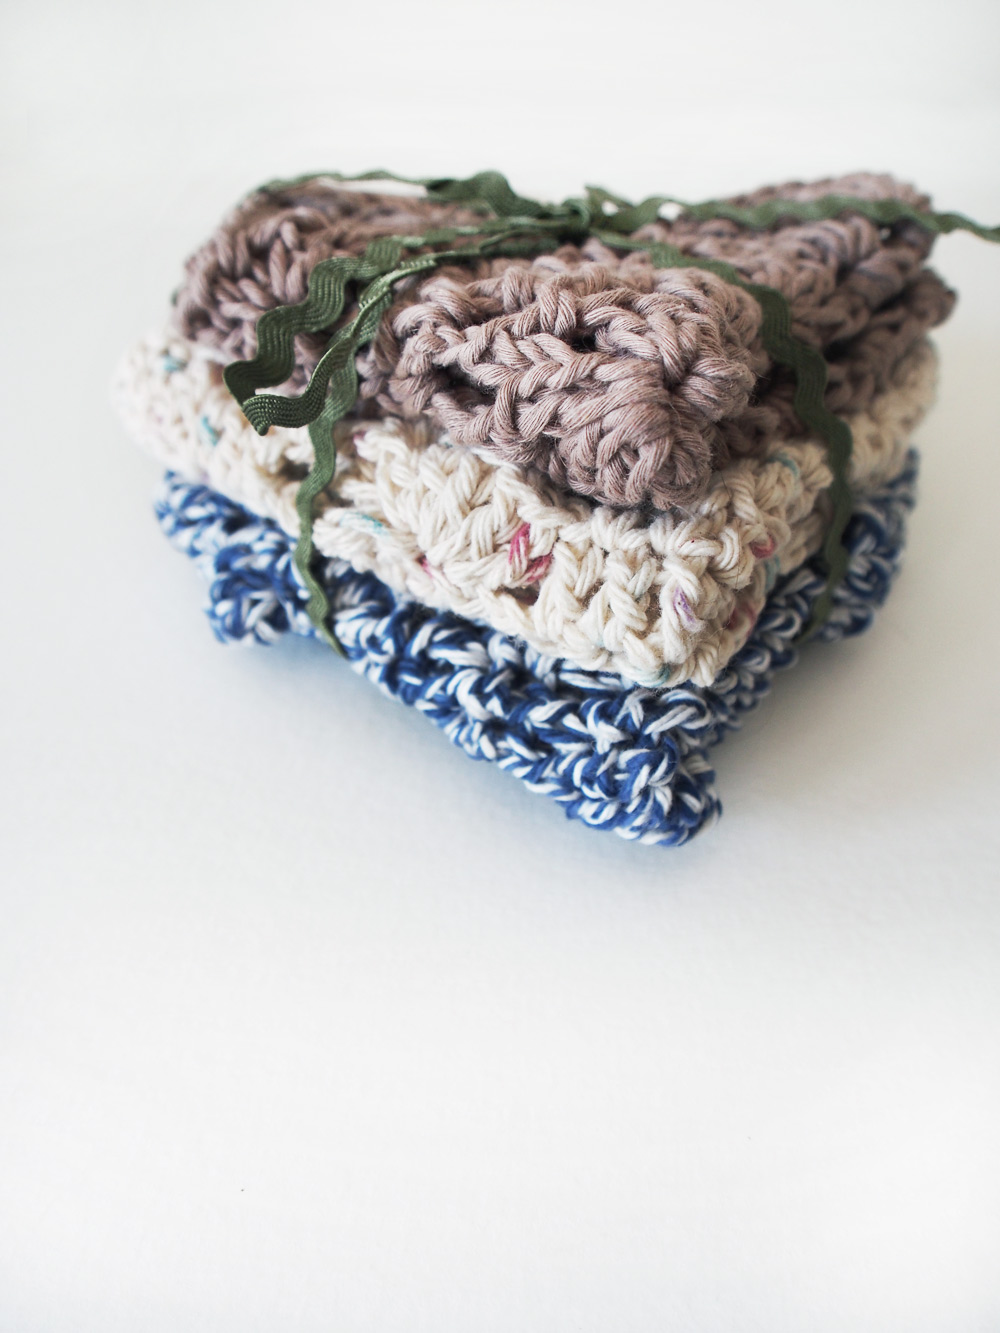 Westervin Shop: Handmade Crochet Dishcloths in Oyster, Cream, and Navy